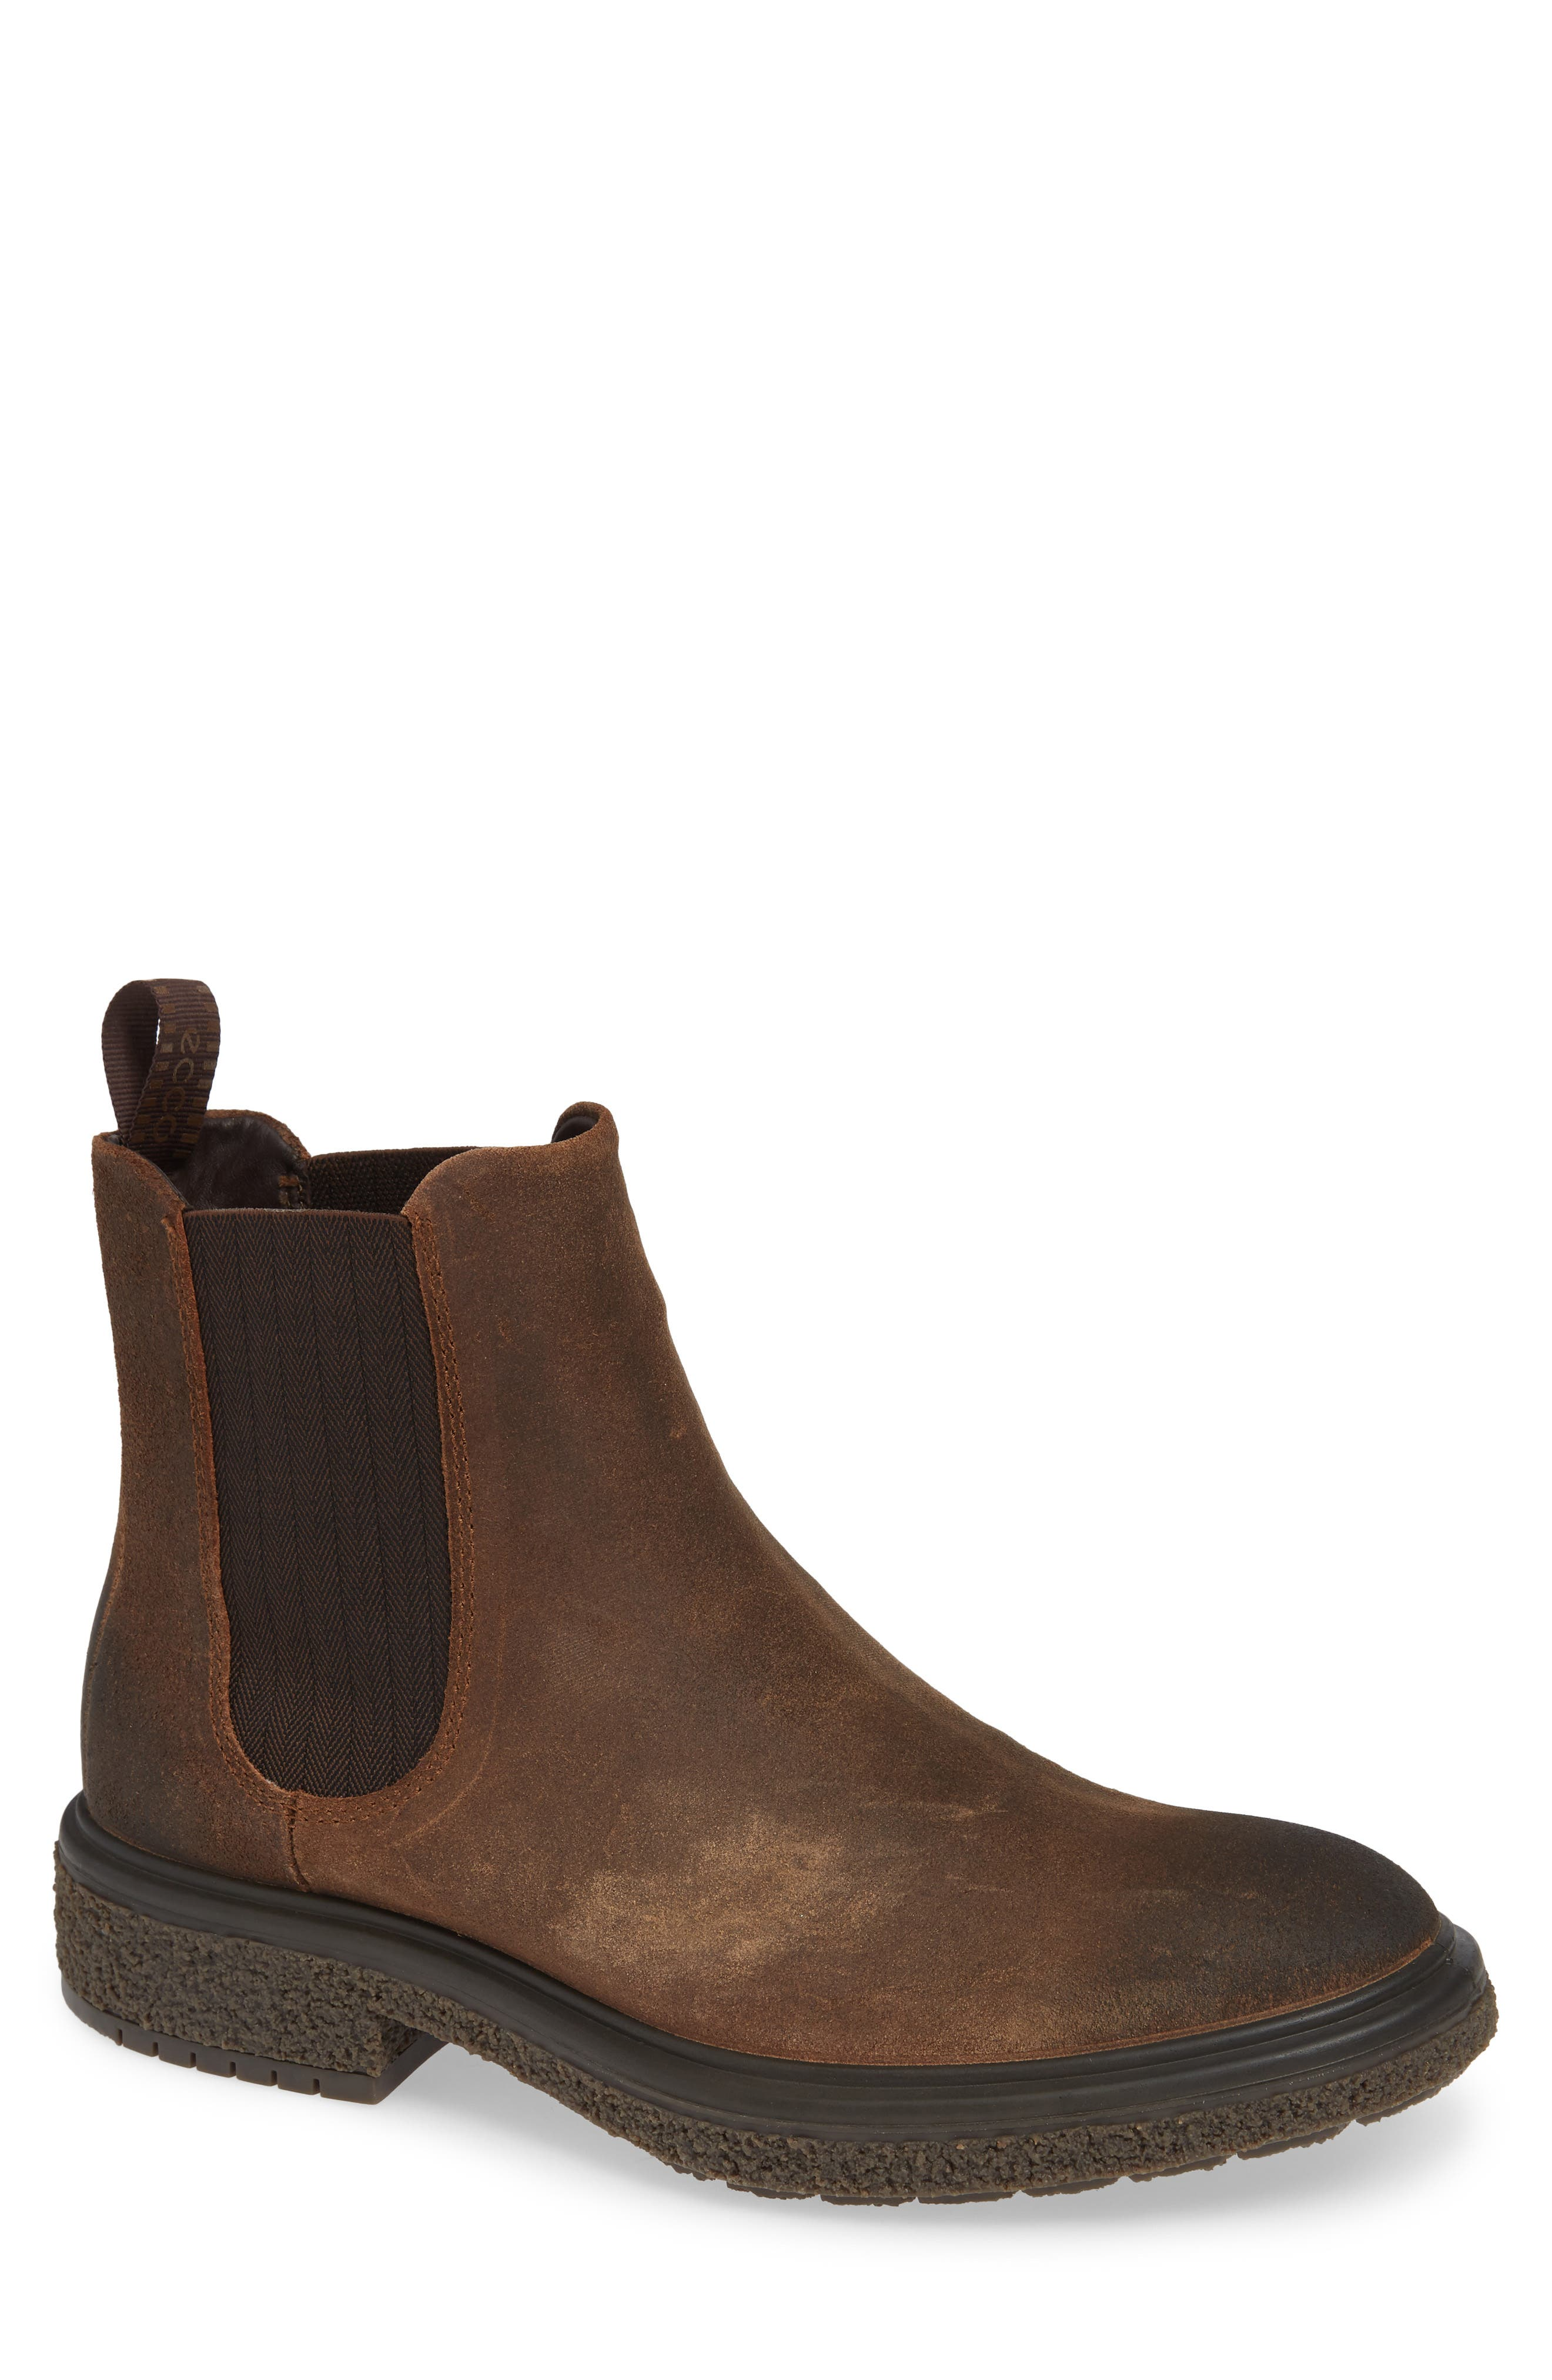 Crepetray Chelsea Boot,                         Main,                         color, 201